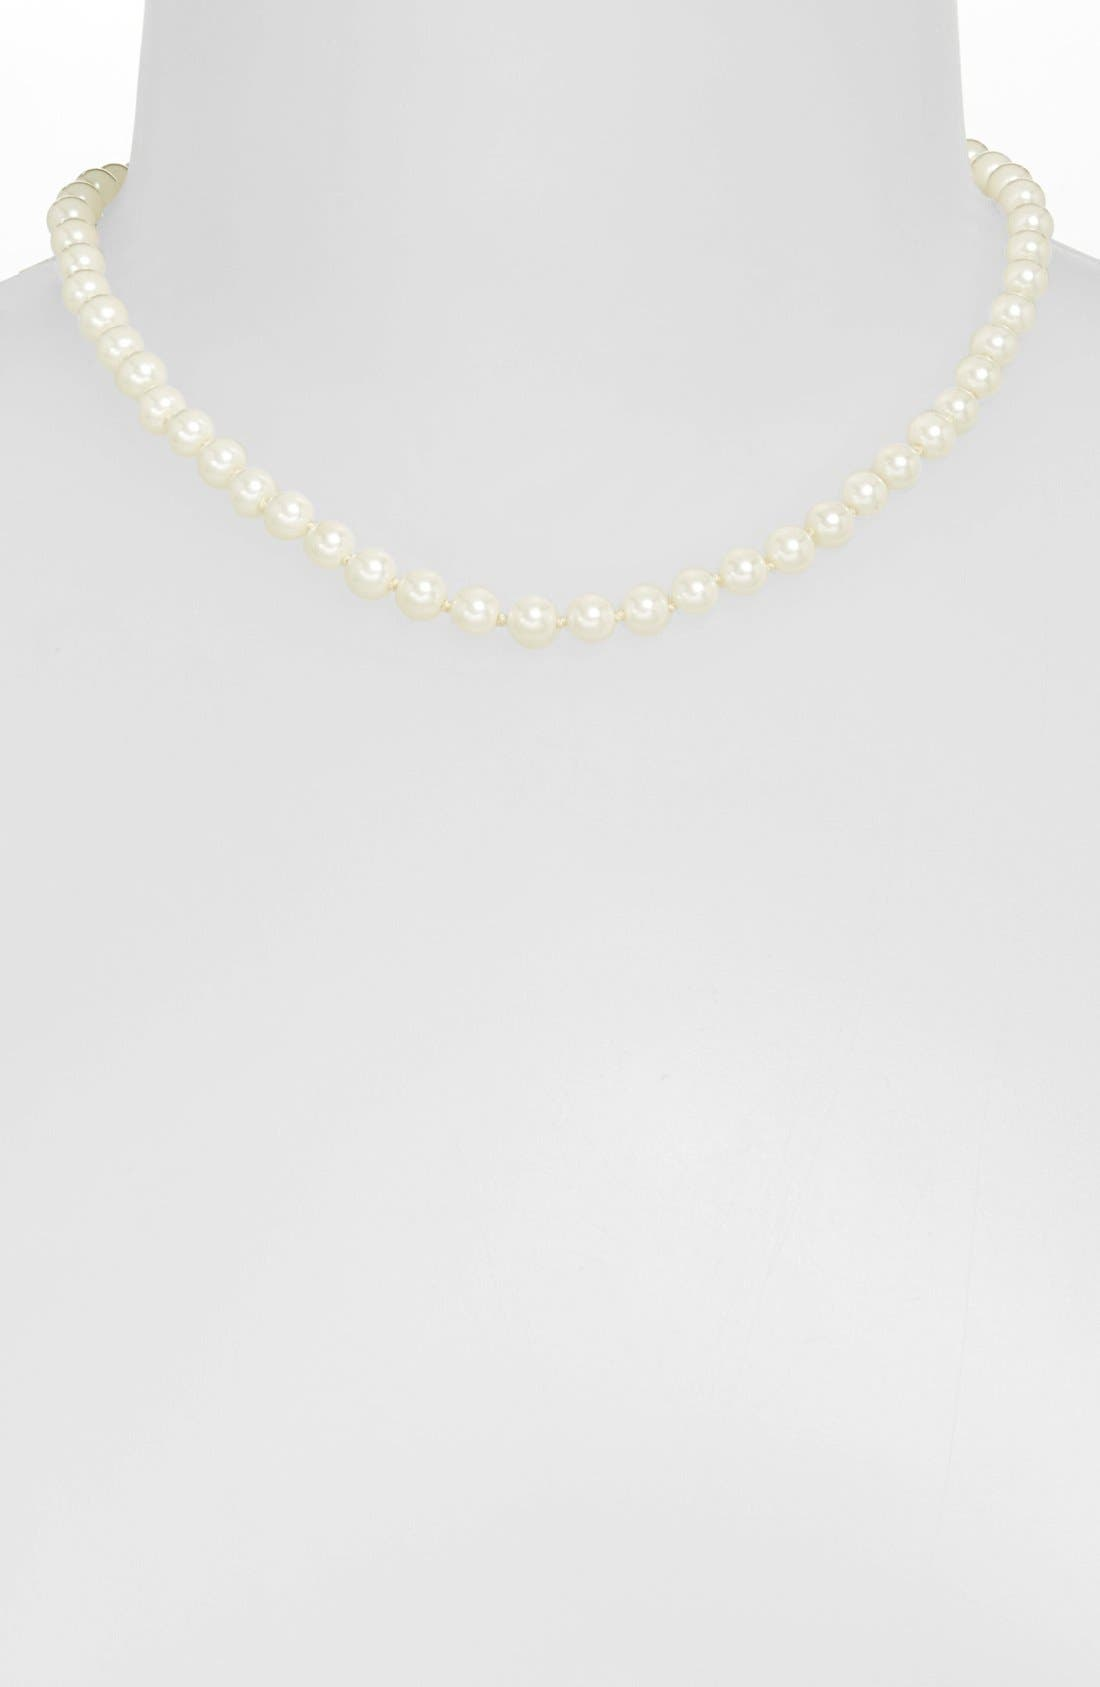 Main Image - Lauren Ralph Lauren Glass Pearl Necklace